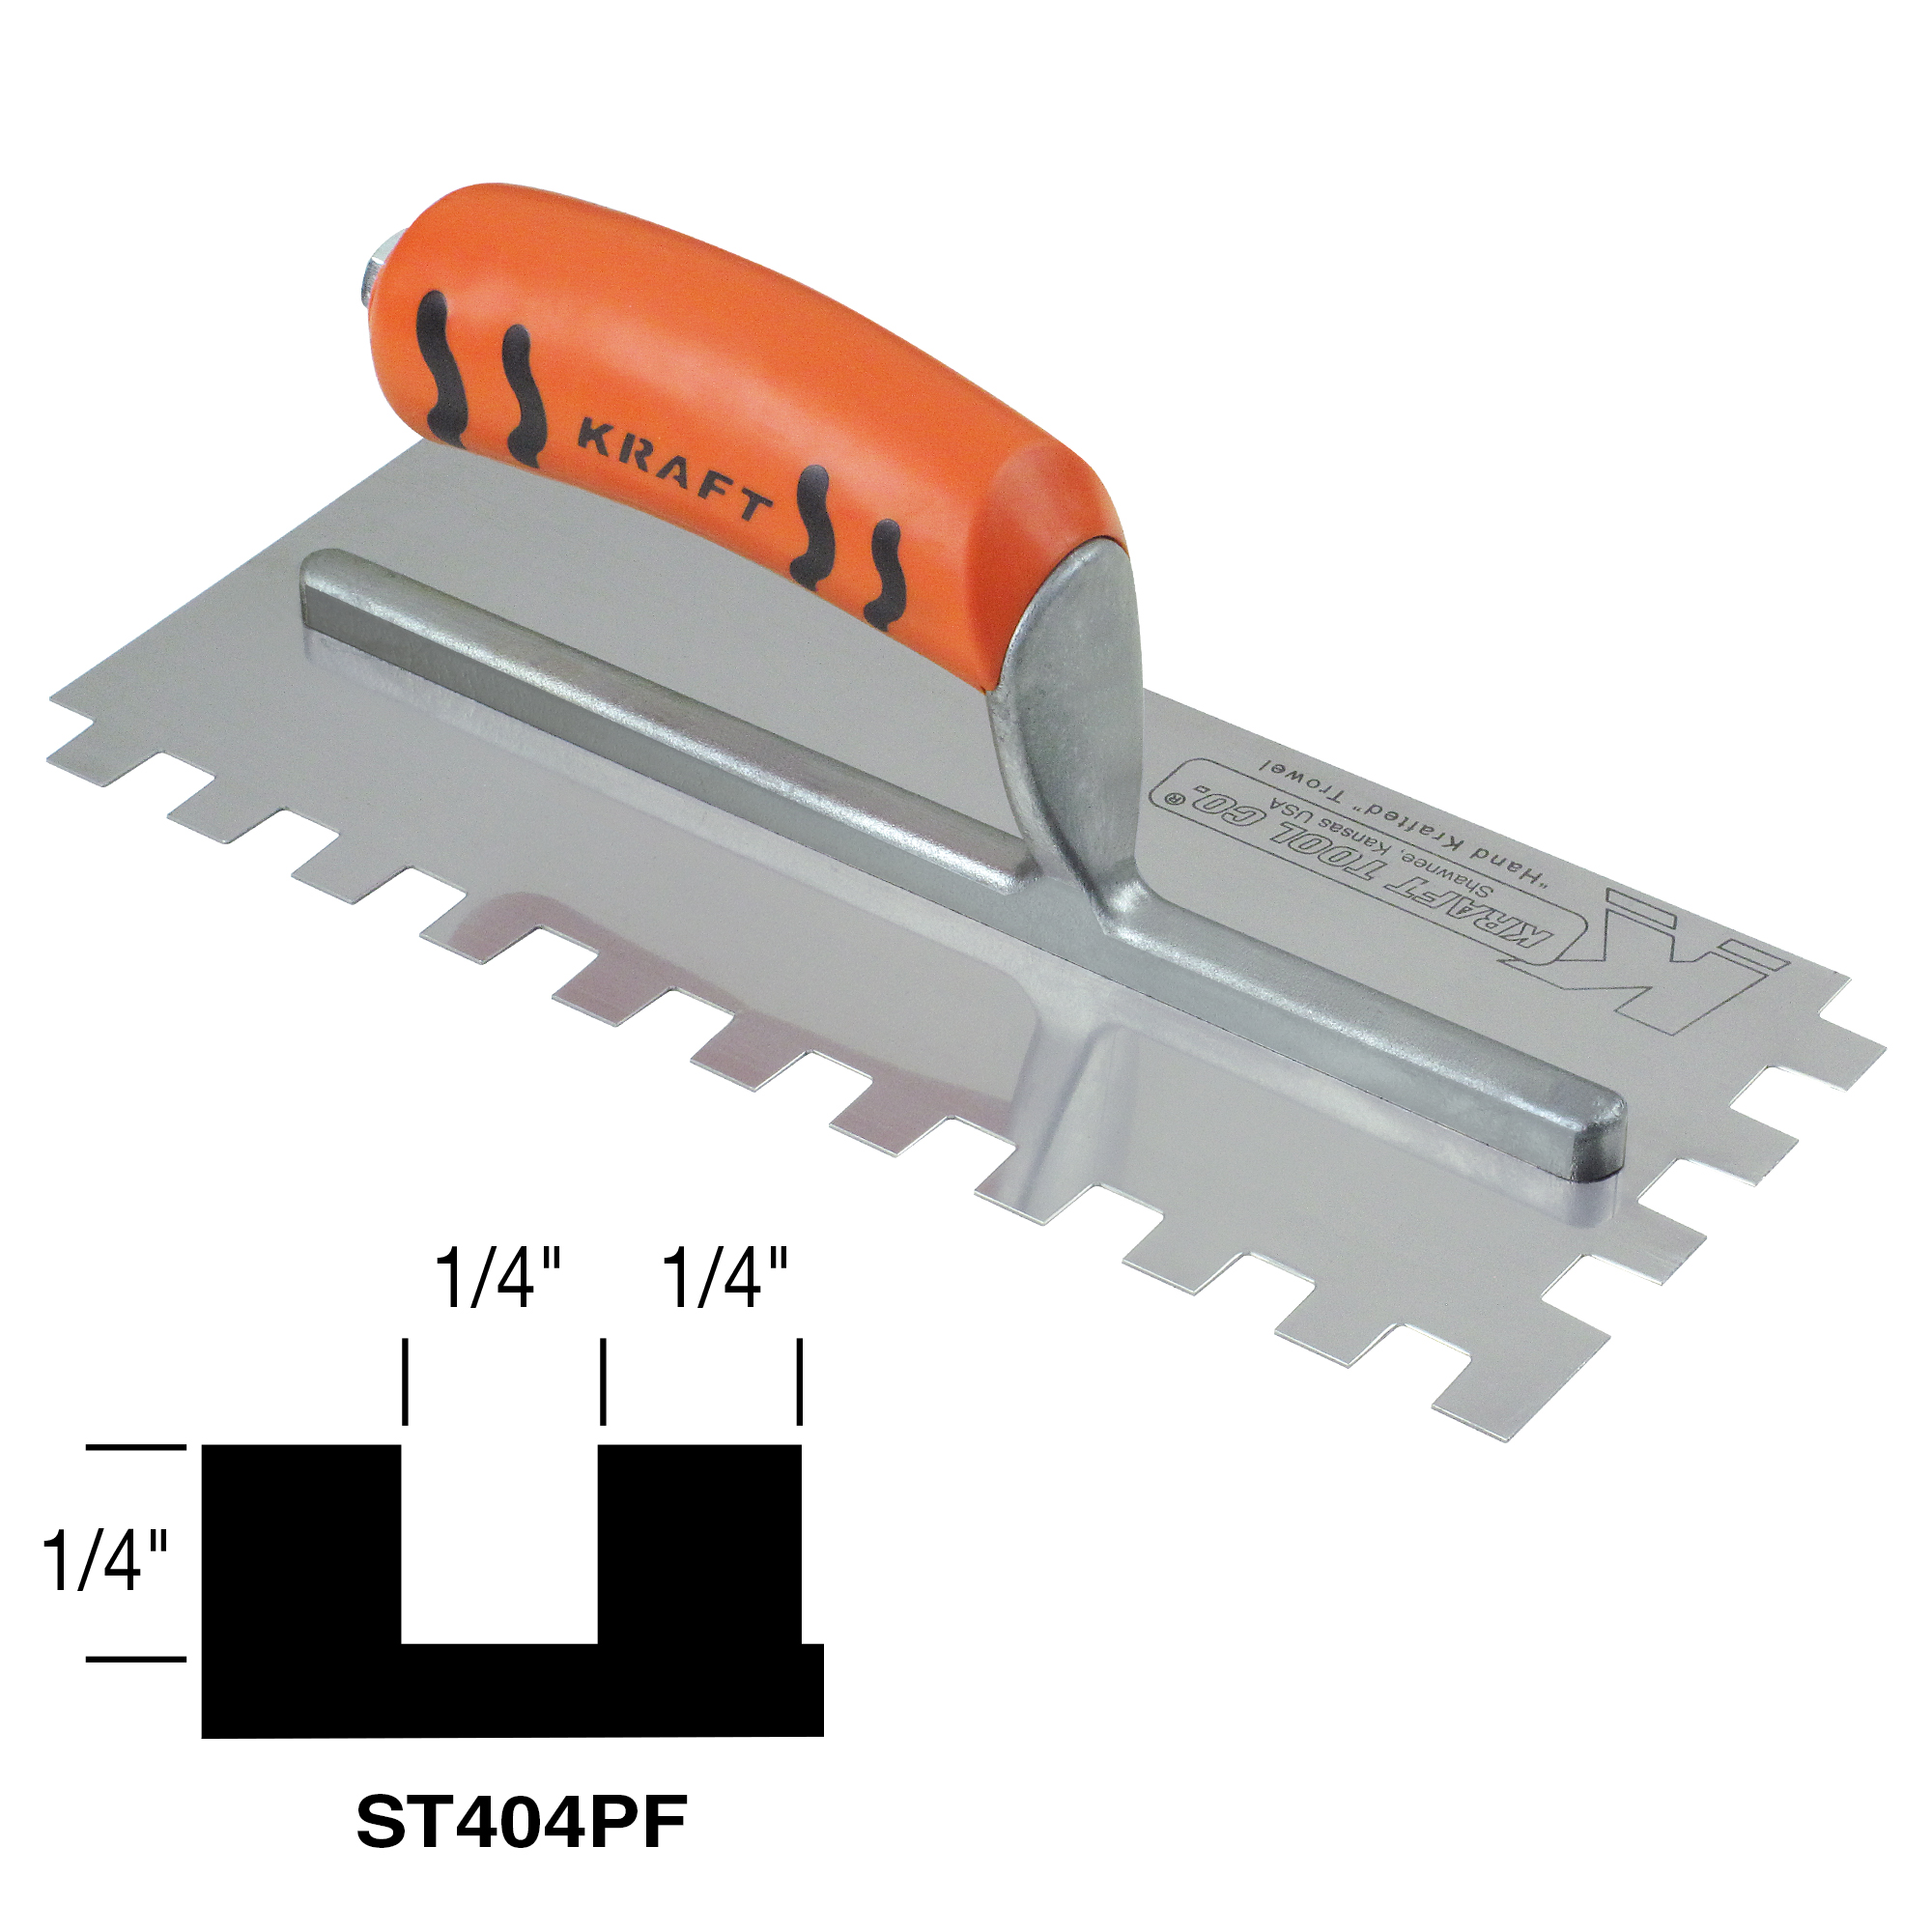 1/4inch X 1/4inch X 1/4inch Square-notch Trowel With Proform Handle - St404pf - Tools Masonry Tools Notch Trowels ST404PF